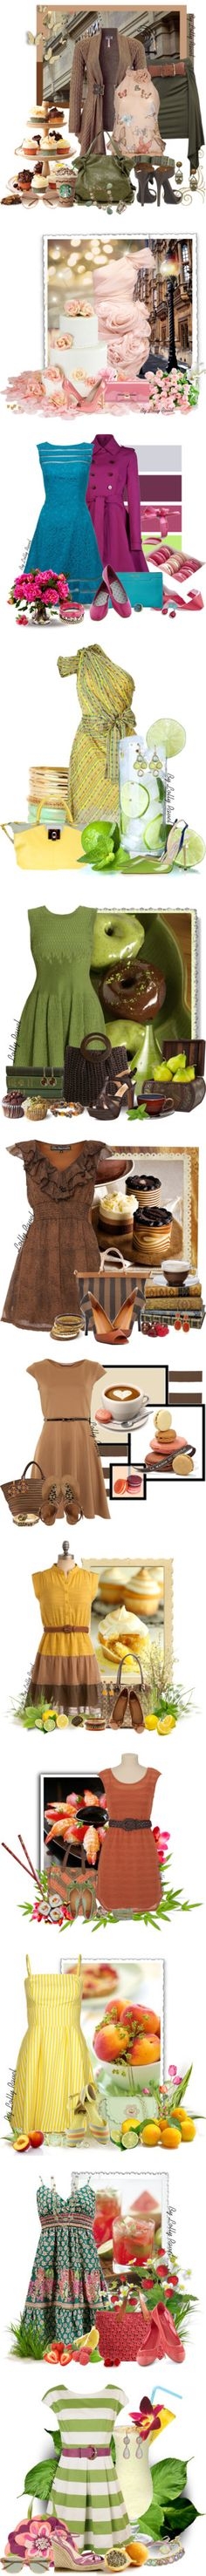 """Sets with food"" by lolly-ravel ❤ liked on Polyvore"